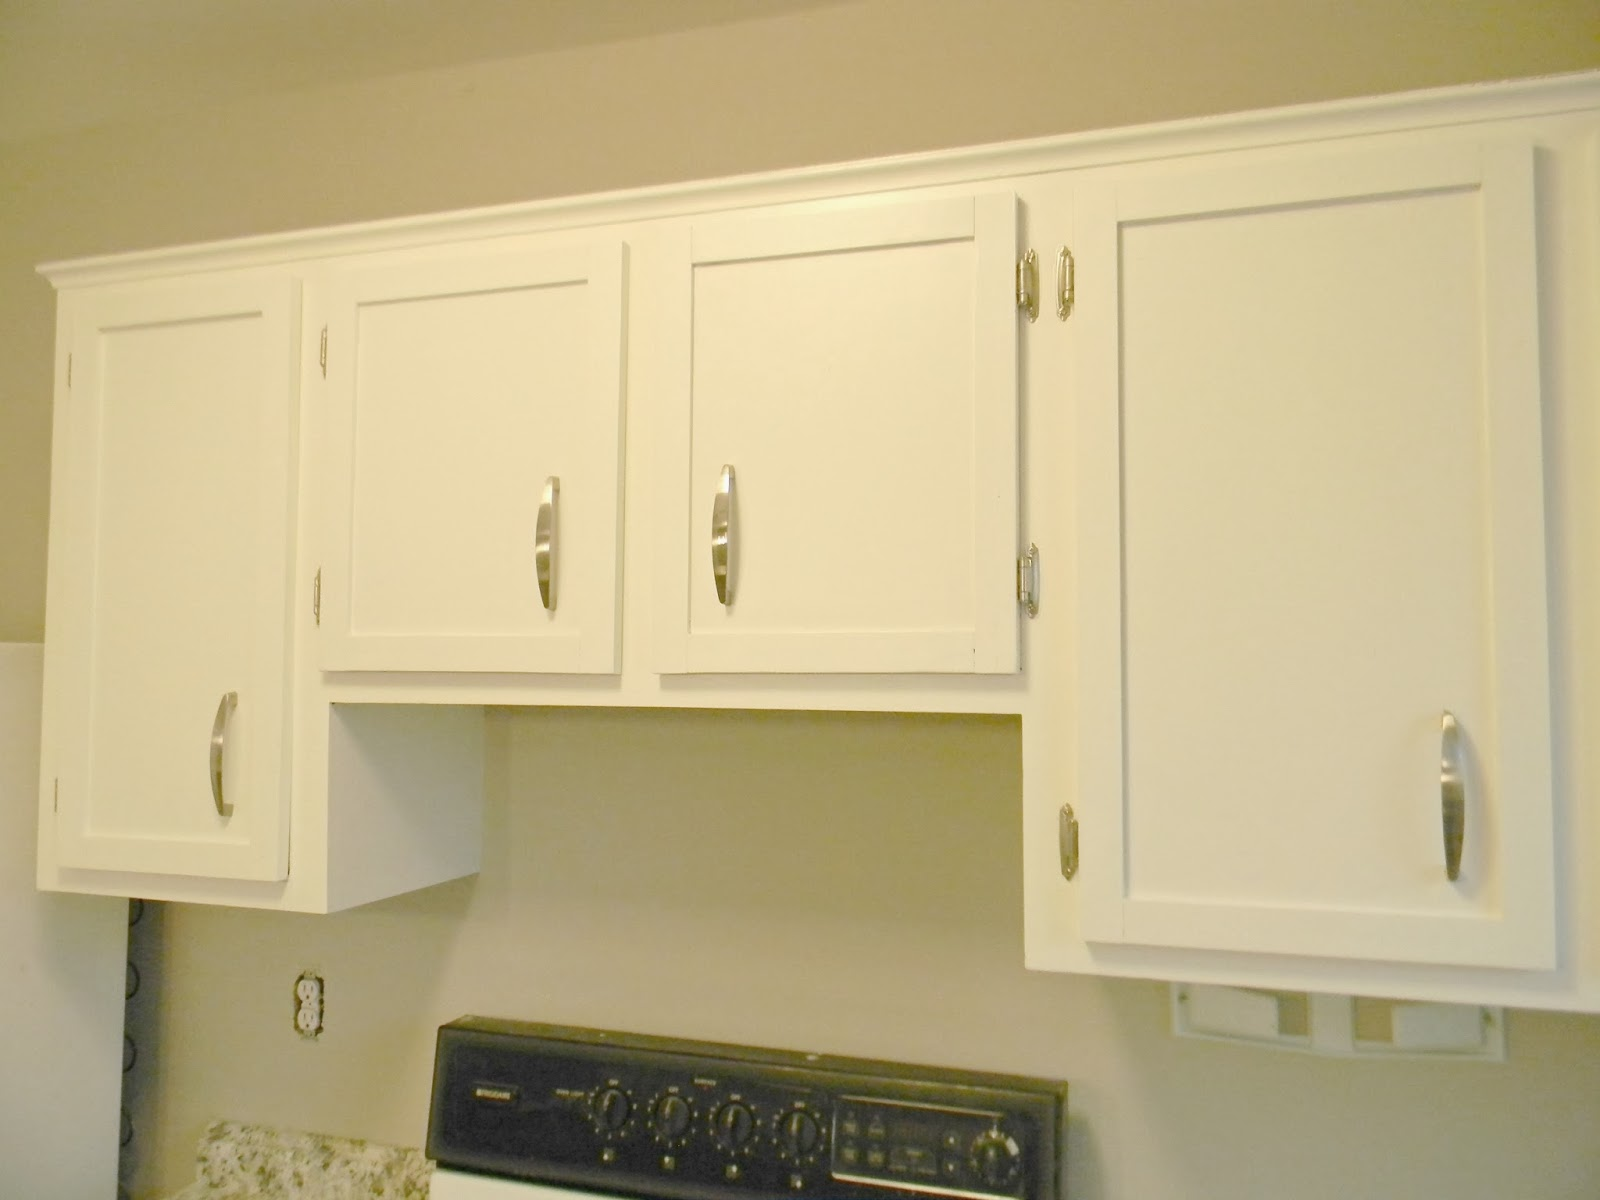 silver hinges instead of old dingy rusty ones finish off the cabinets